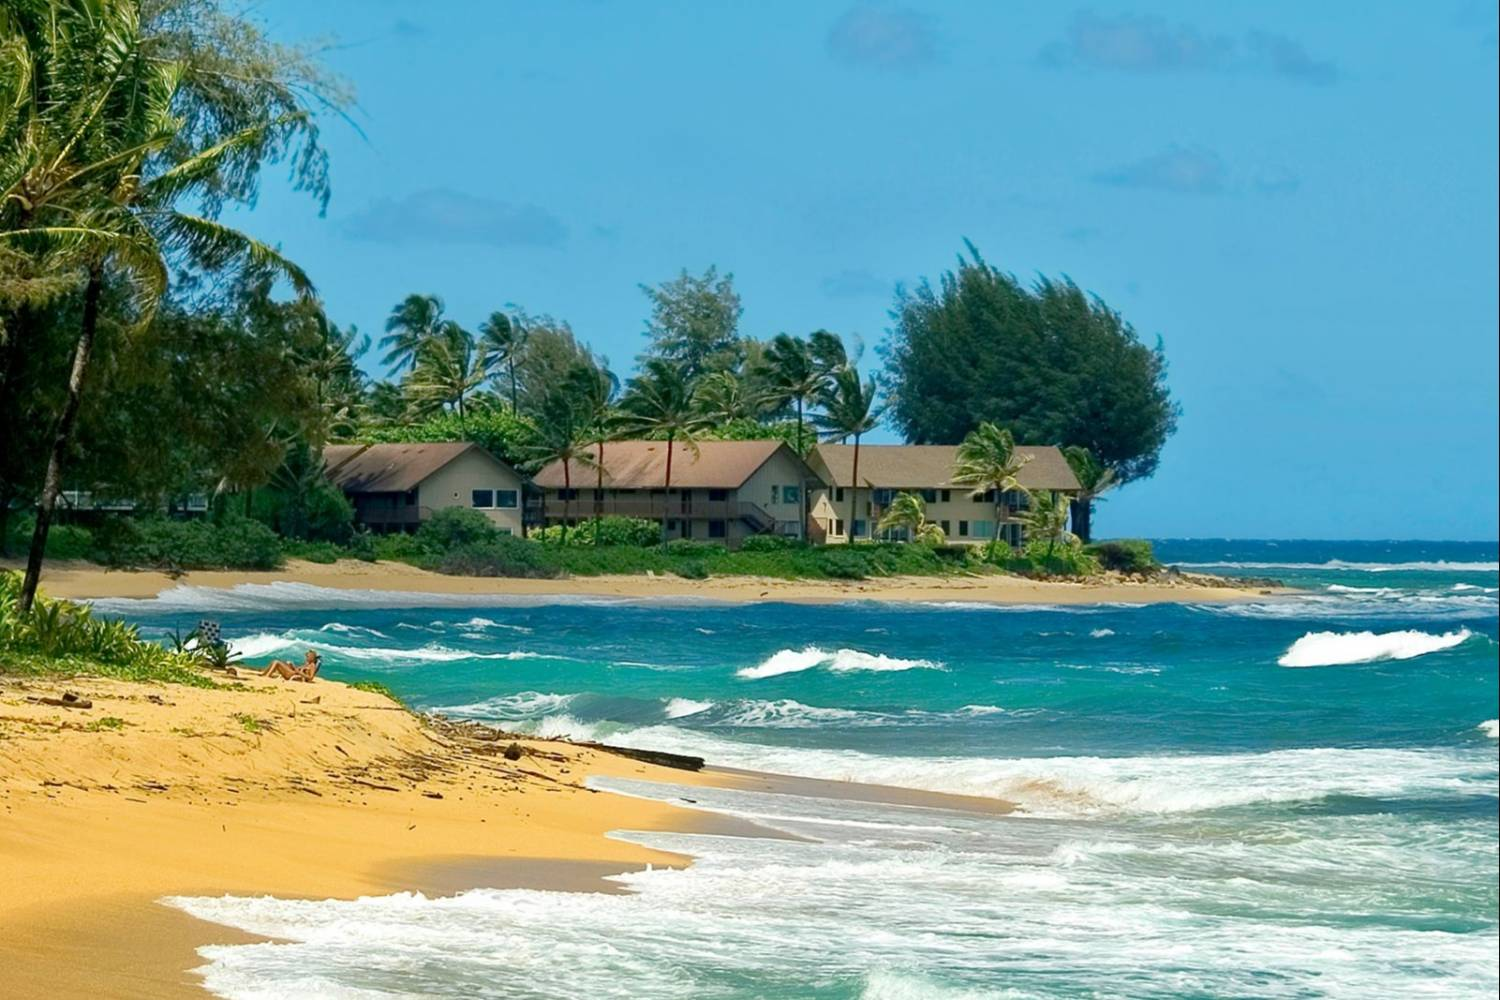 Lovely view in Kauai - Take a Chef